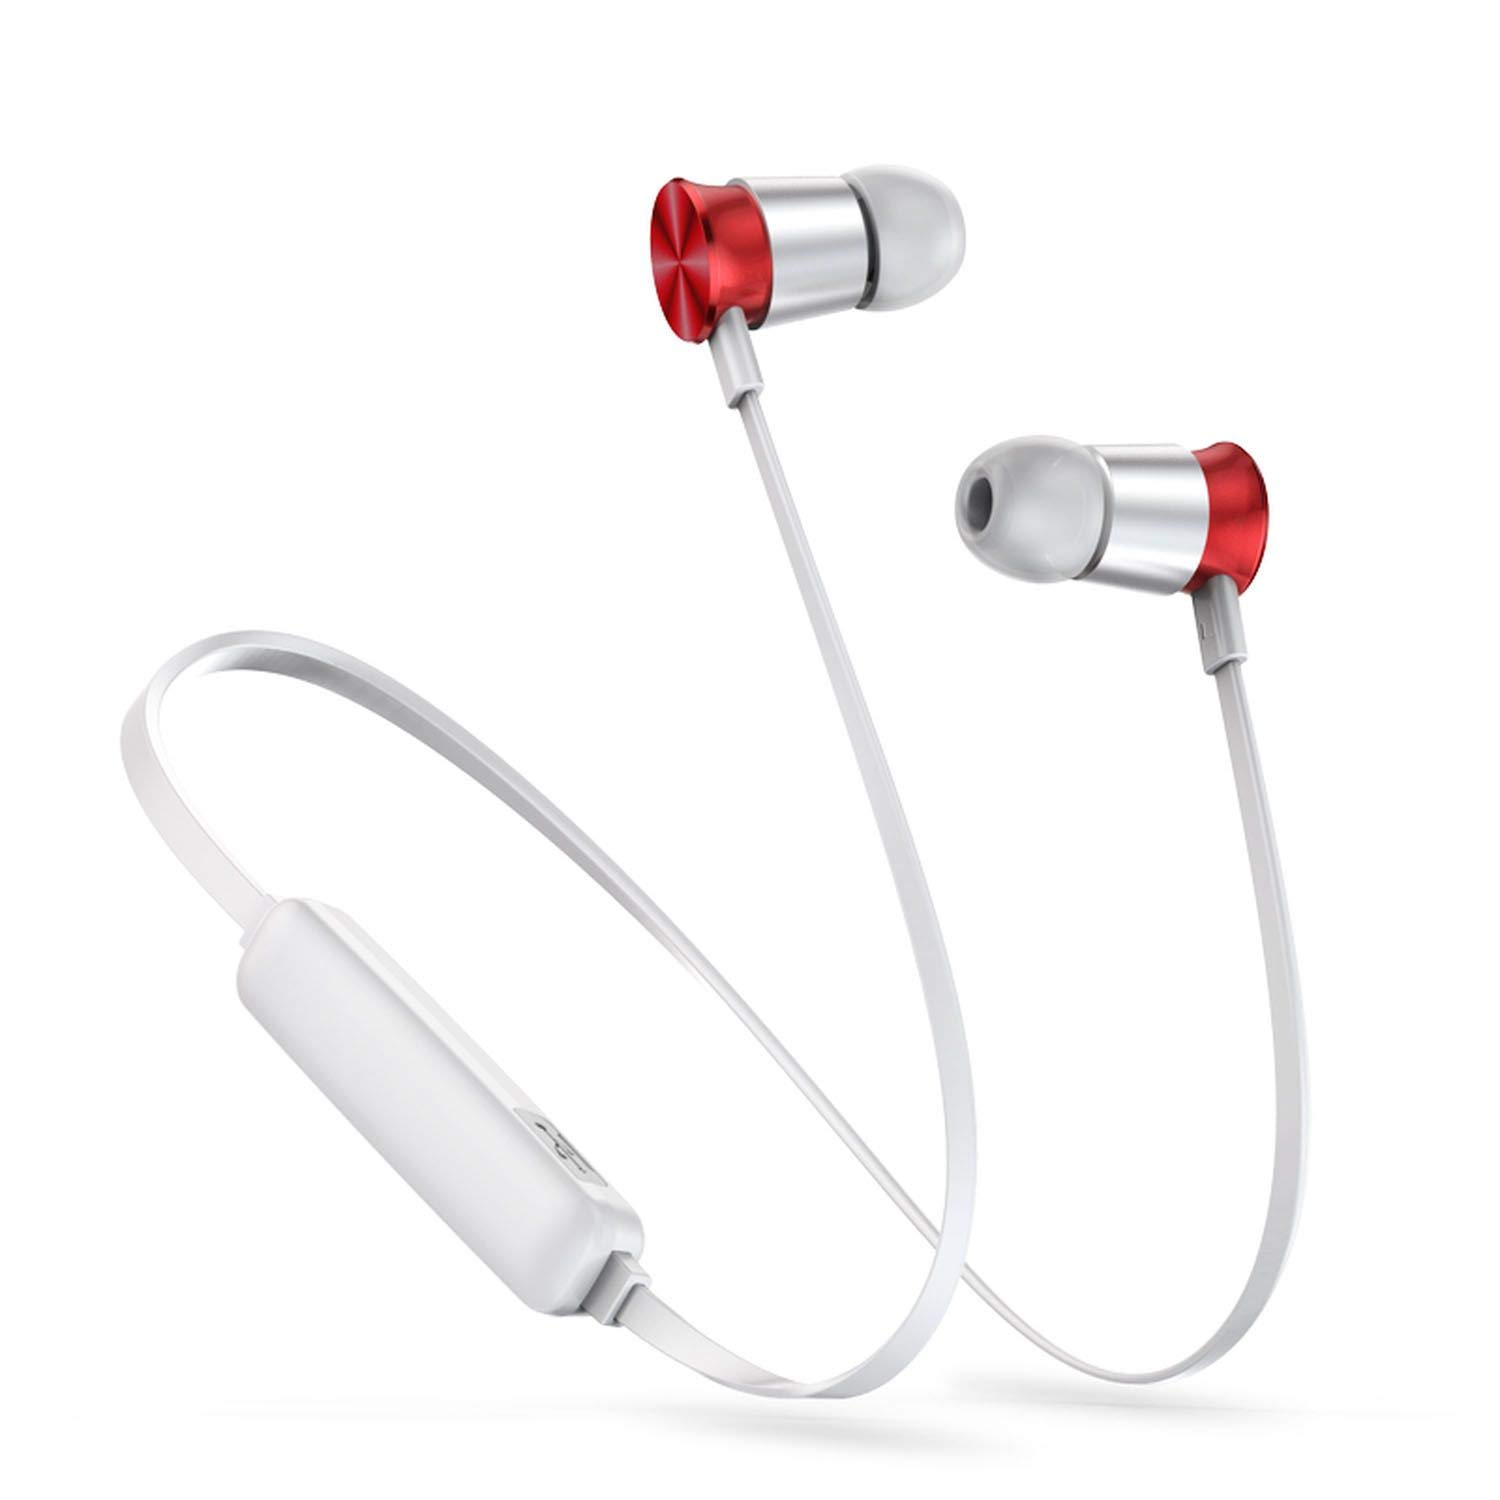 Amazon.com: Neckband Wireless Bluetooth Headphone Earphone Sports Headset Stereo Earbuds Earpiece,Black and Red: Home Audio & Theater